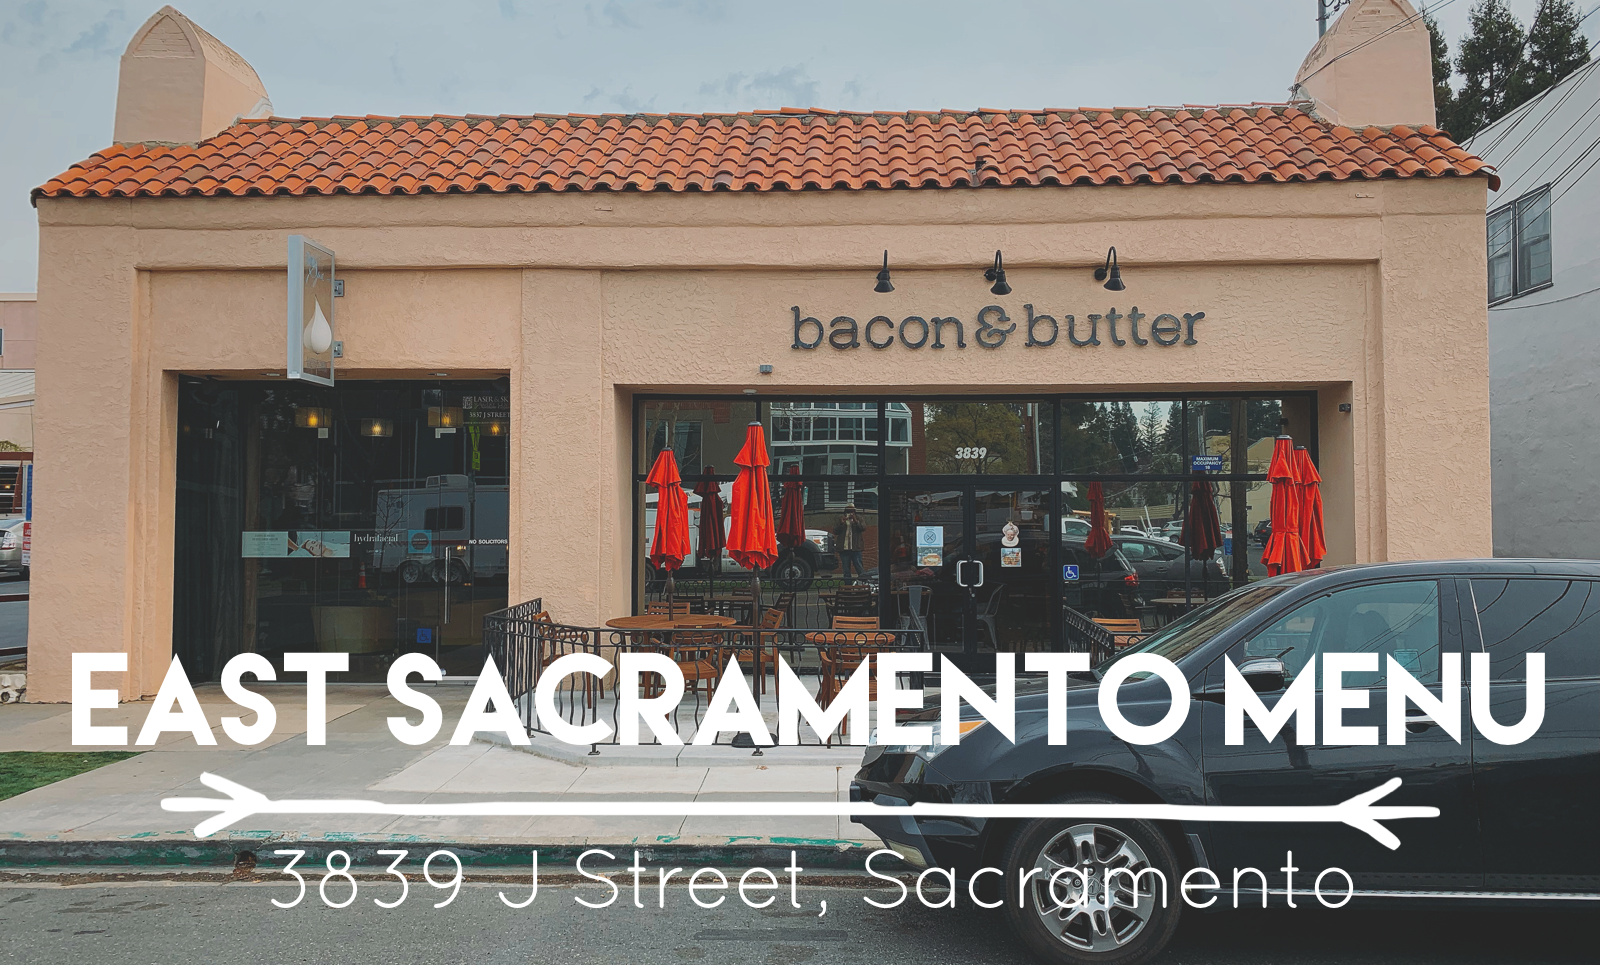 View the East Sacramento Breakfast, Lunch and Brunch Menu